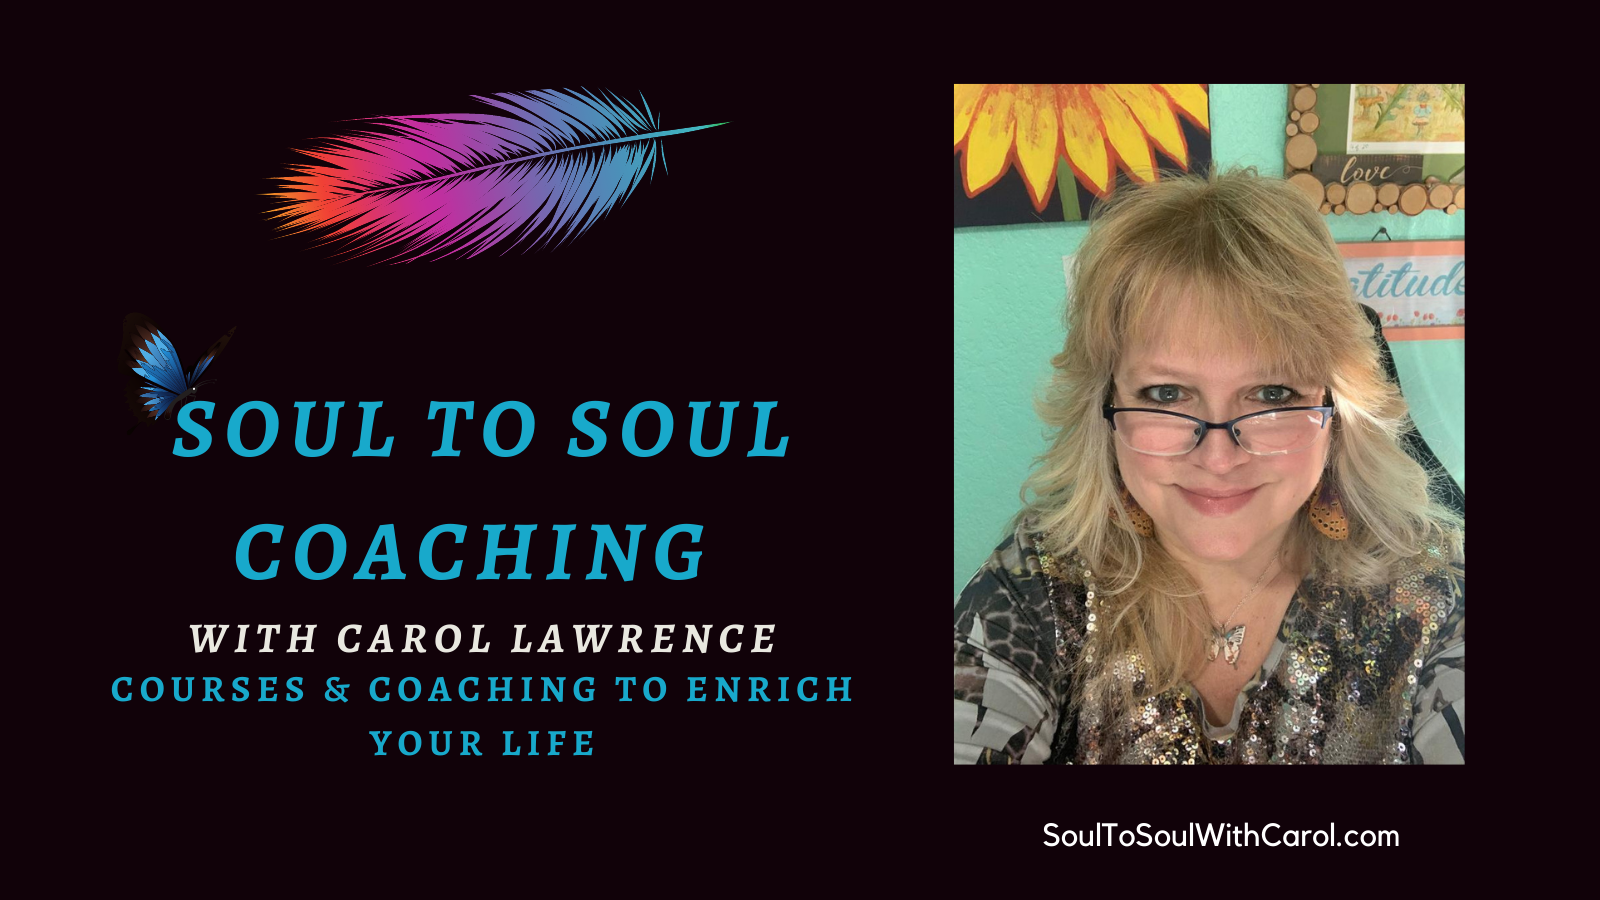 Soul To Soul Coaching With Carol